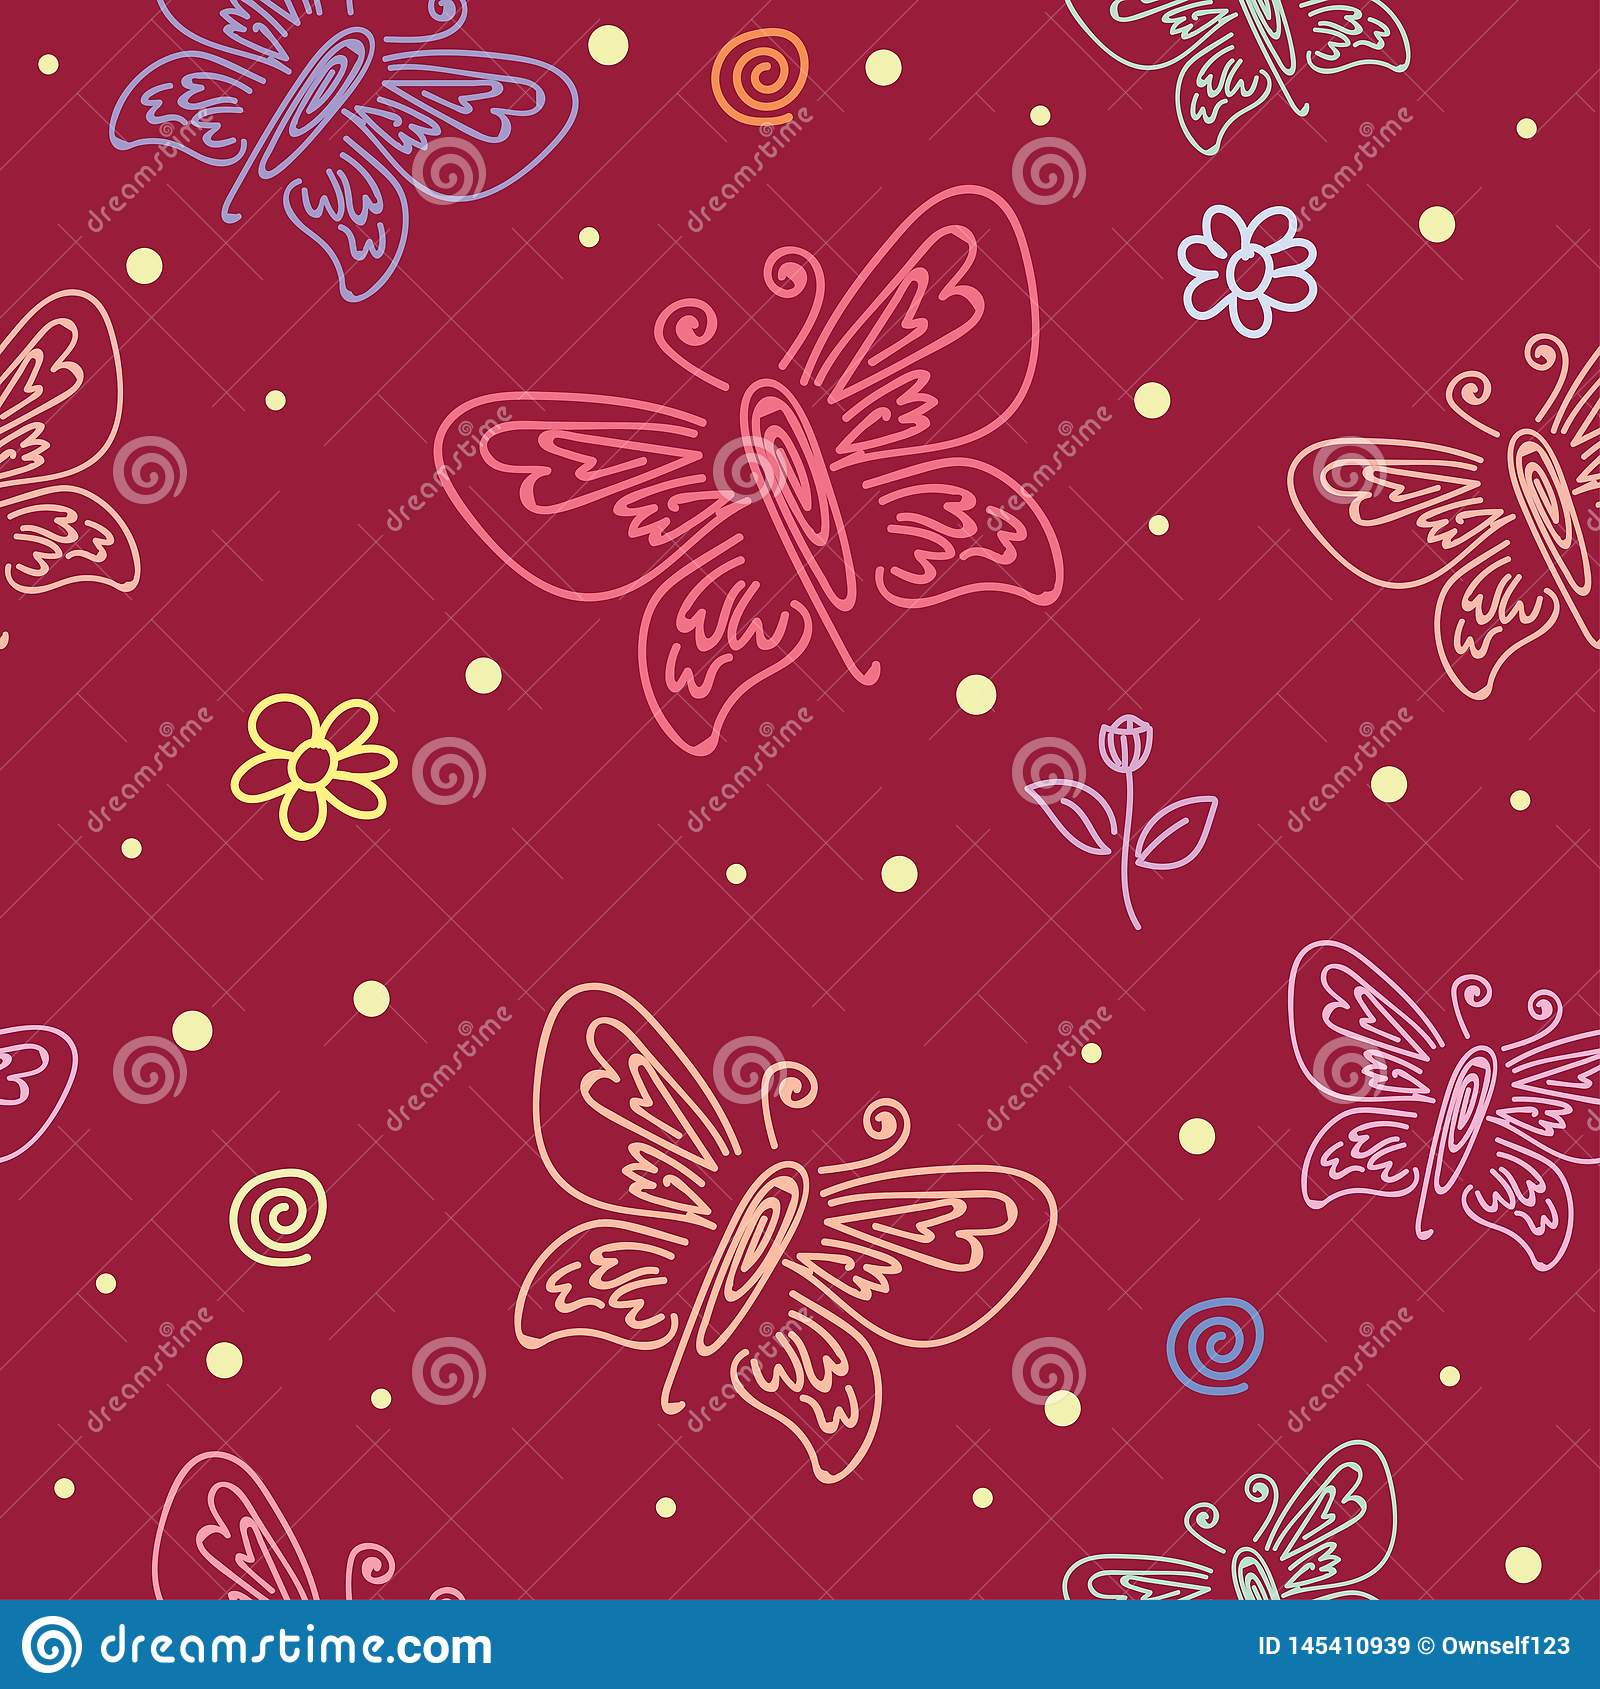 Seamless Pattern With Motifs Of Various Butterflies Butterfly Ornament Seamless Pattern For Wall Art Design Stock Illustration Illustration Of Plant Doodle 145410939